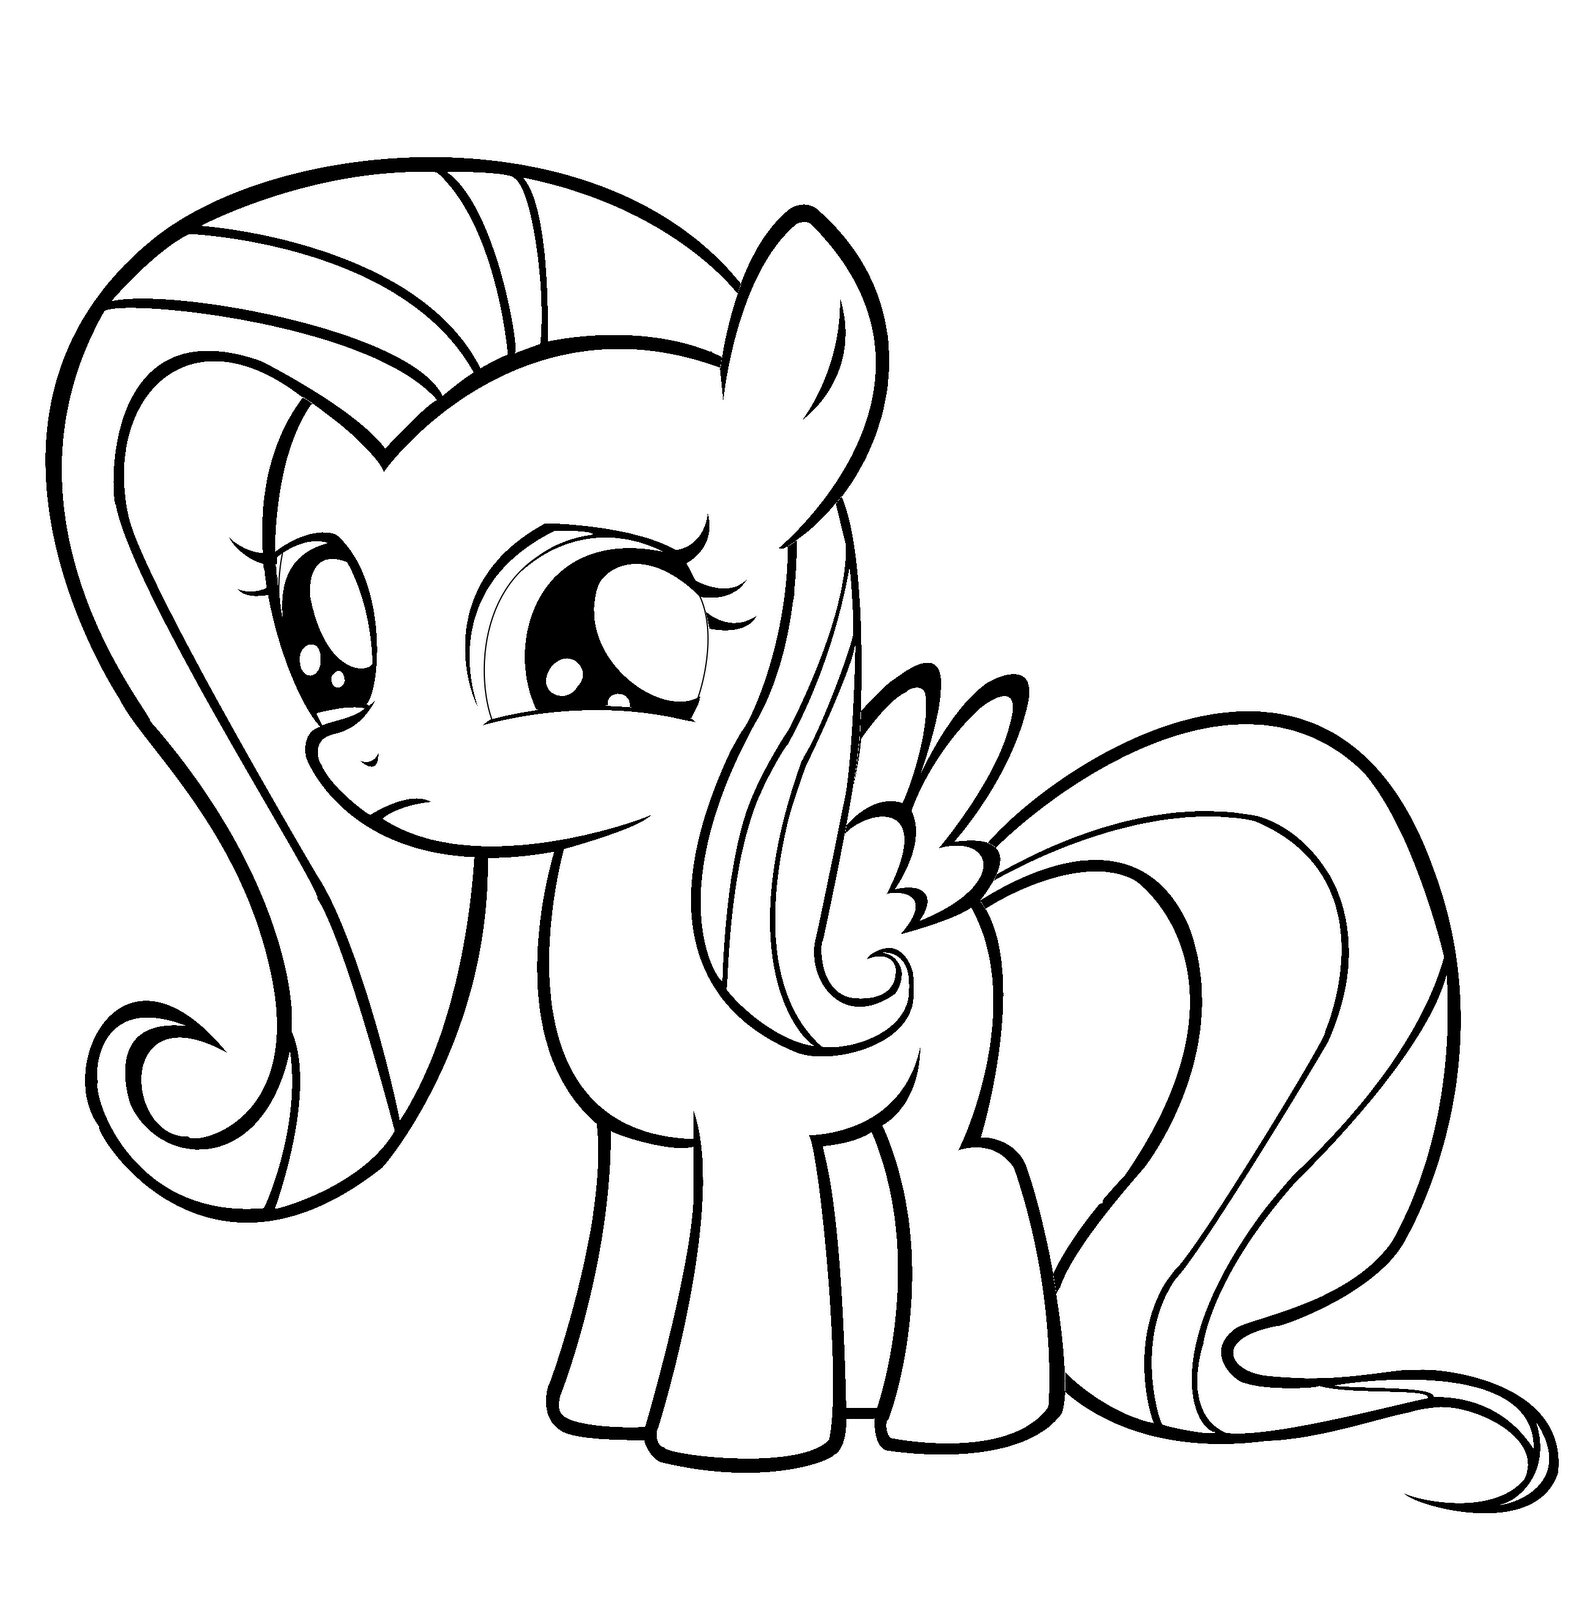 My Little Pony Coloring Pages Baby Rarity : Dessins de coloriage my little pony fluttershy à imprimer